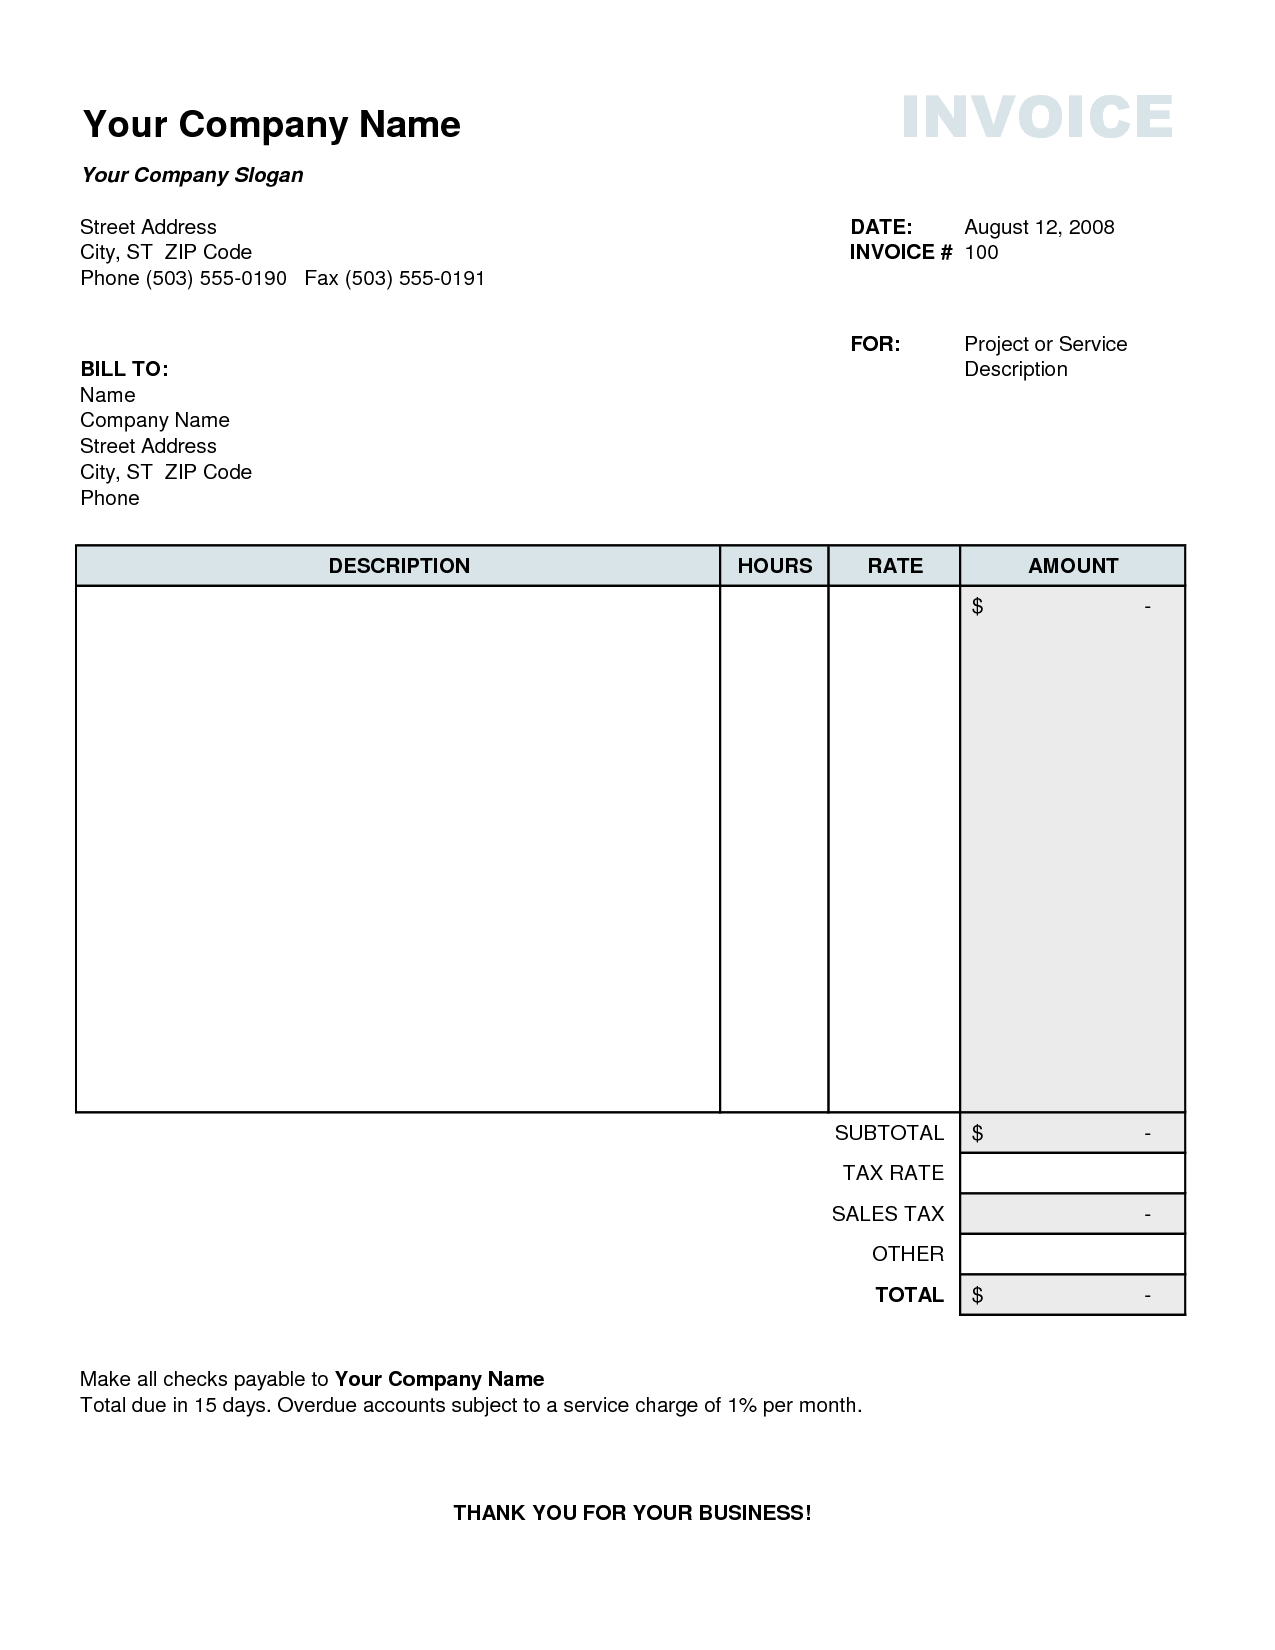 Invoice Template Excel Australia Kevincoynepagetk - Free template for invoice for services rendered online clothing stores for women